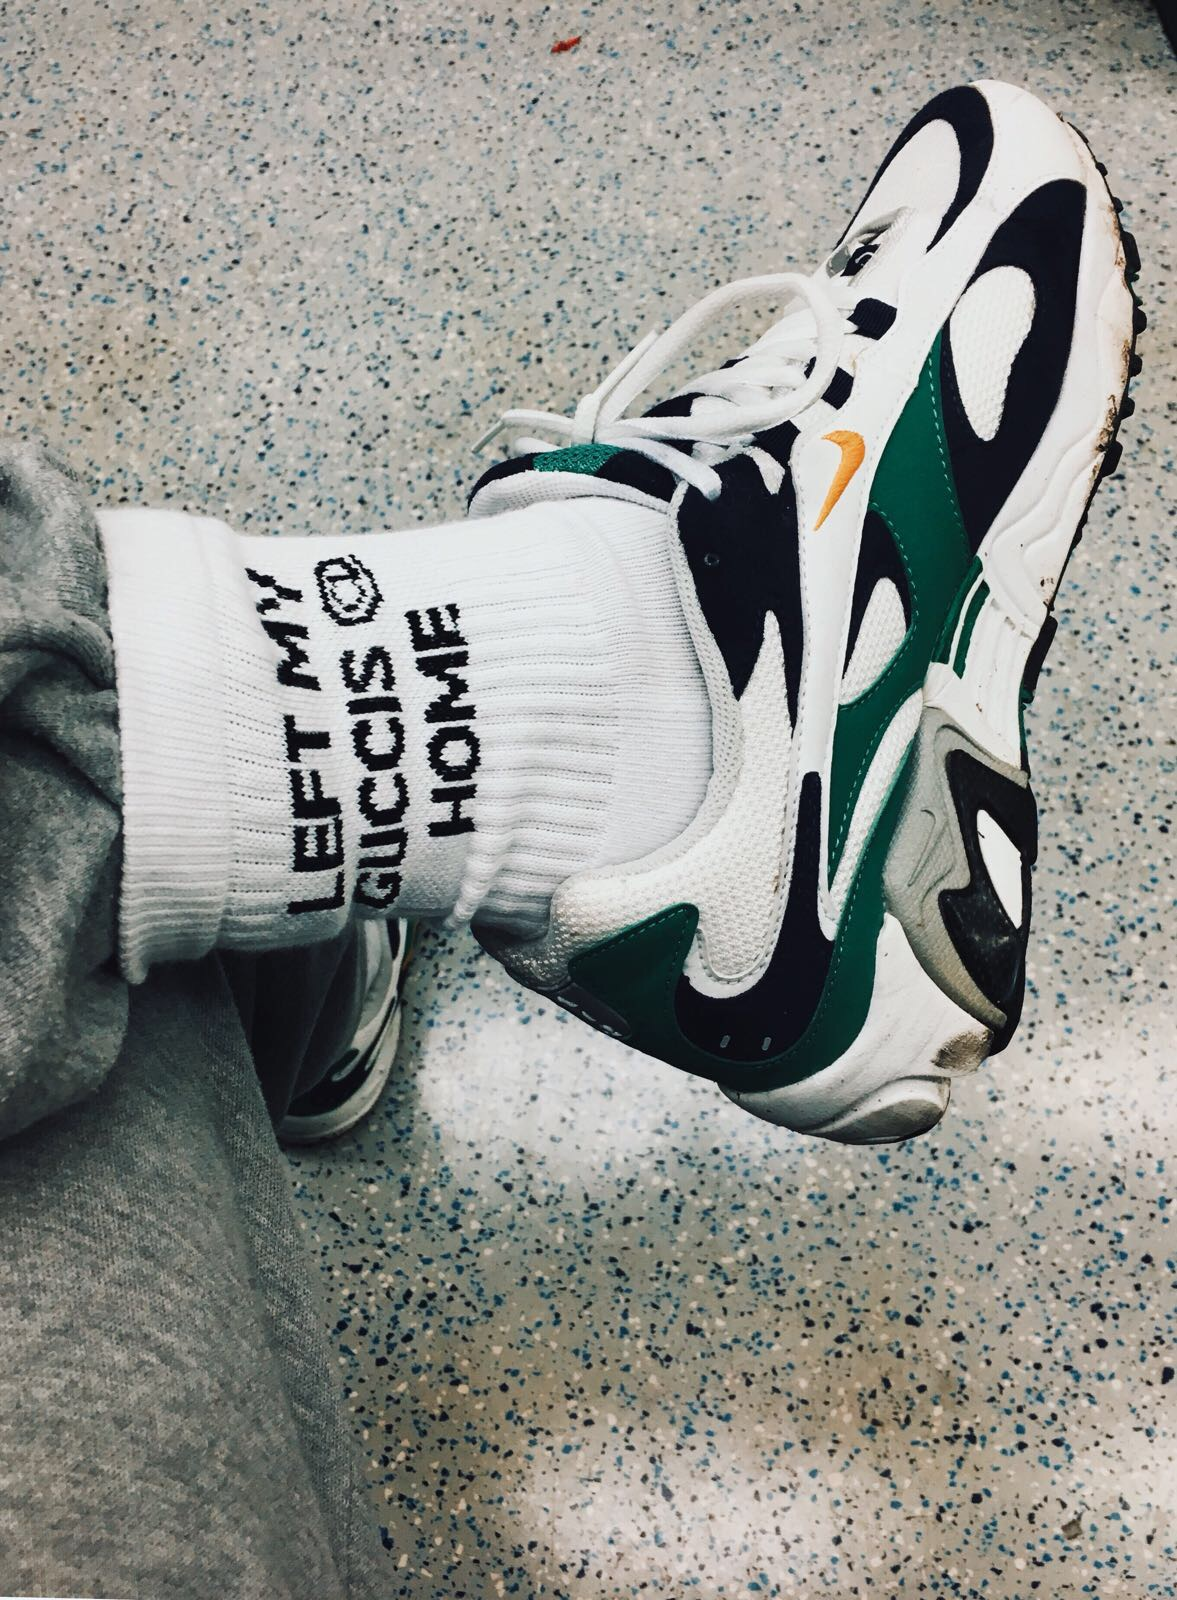 Merch: PAUSE Socks Launches New Socks